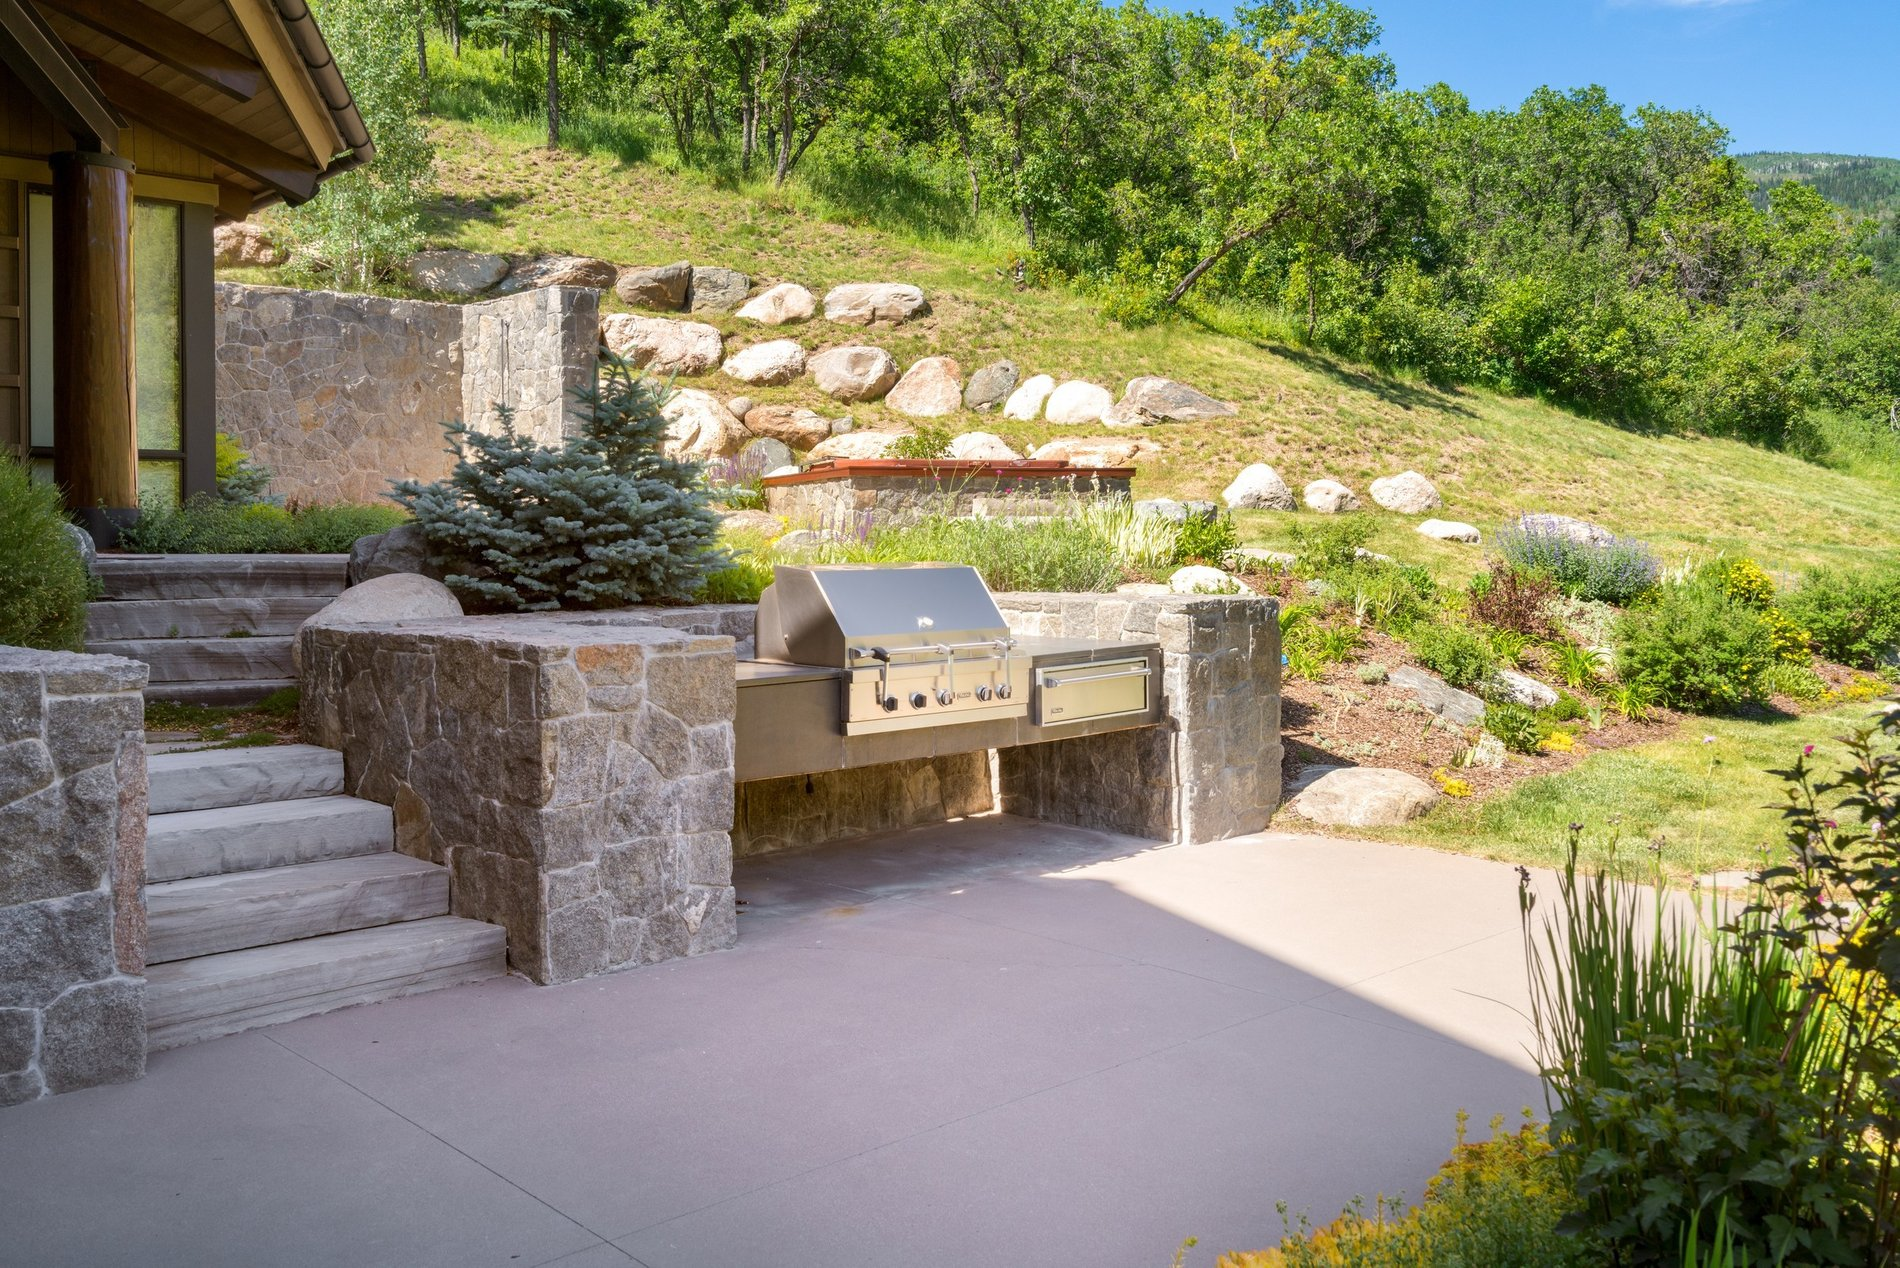 Outdoor grill area made from real stone with a stainless steel grill. Stone steps leading to a concrete patio.